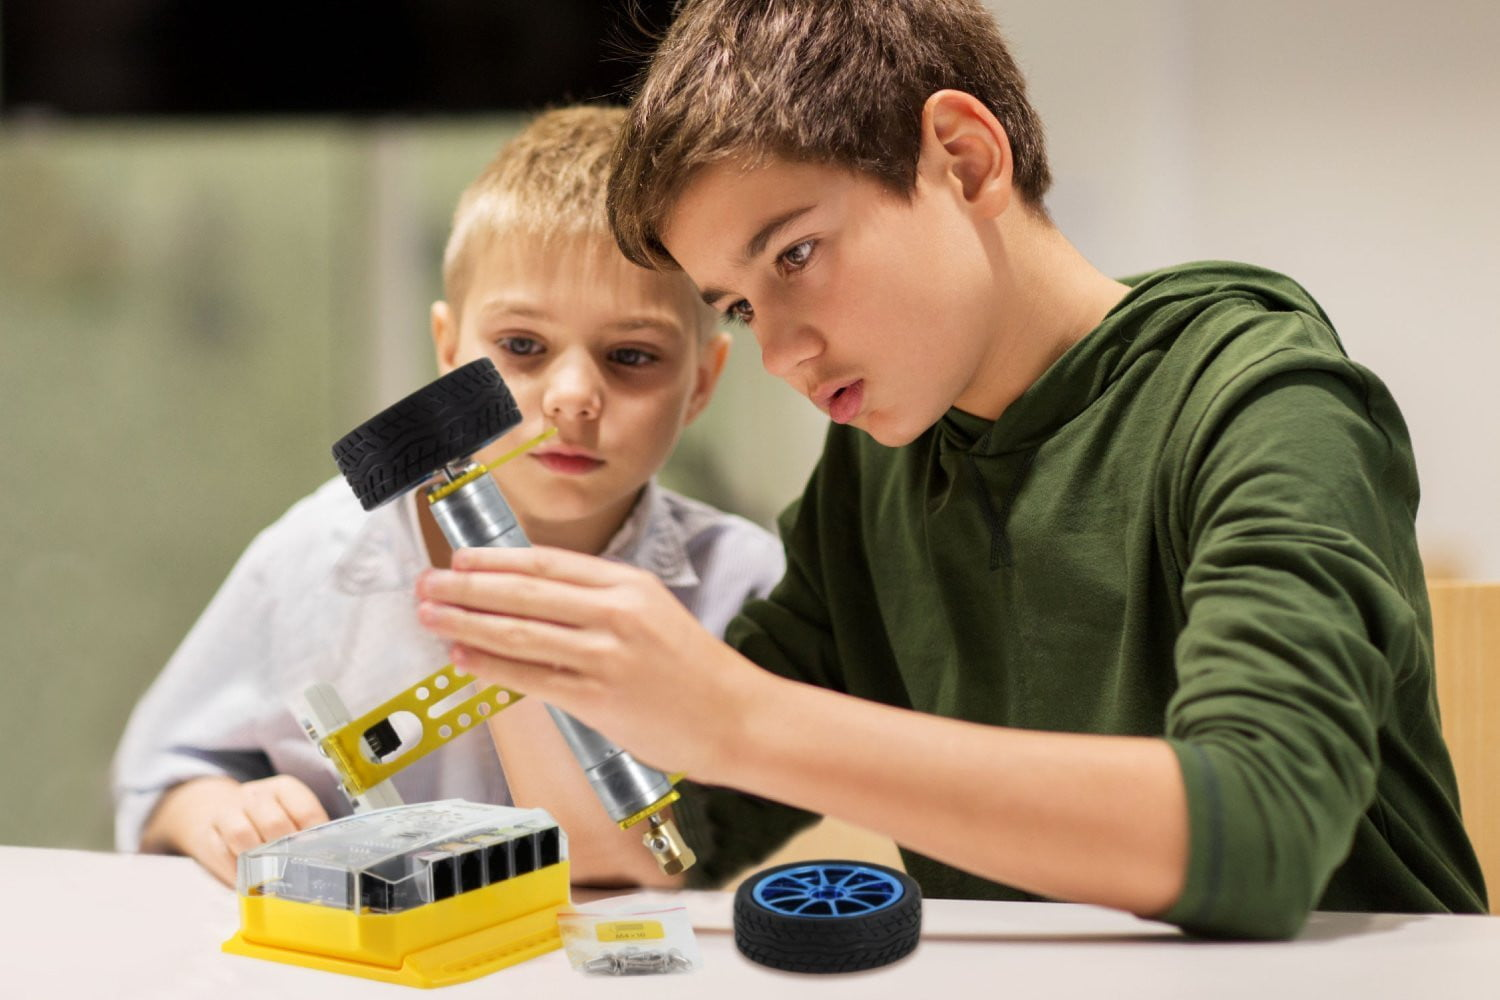 The Best Robot Kits for Kids | Digital Trends